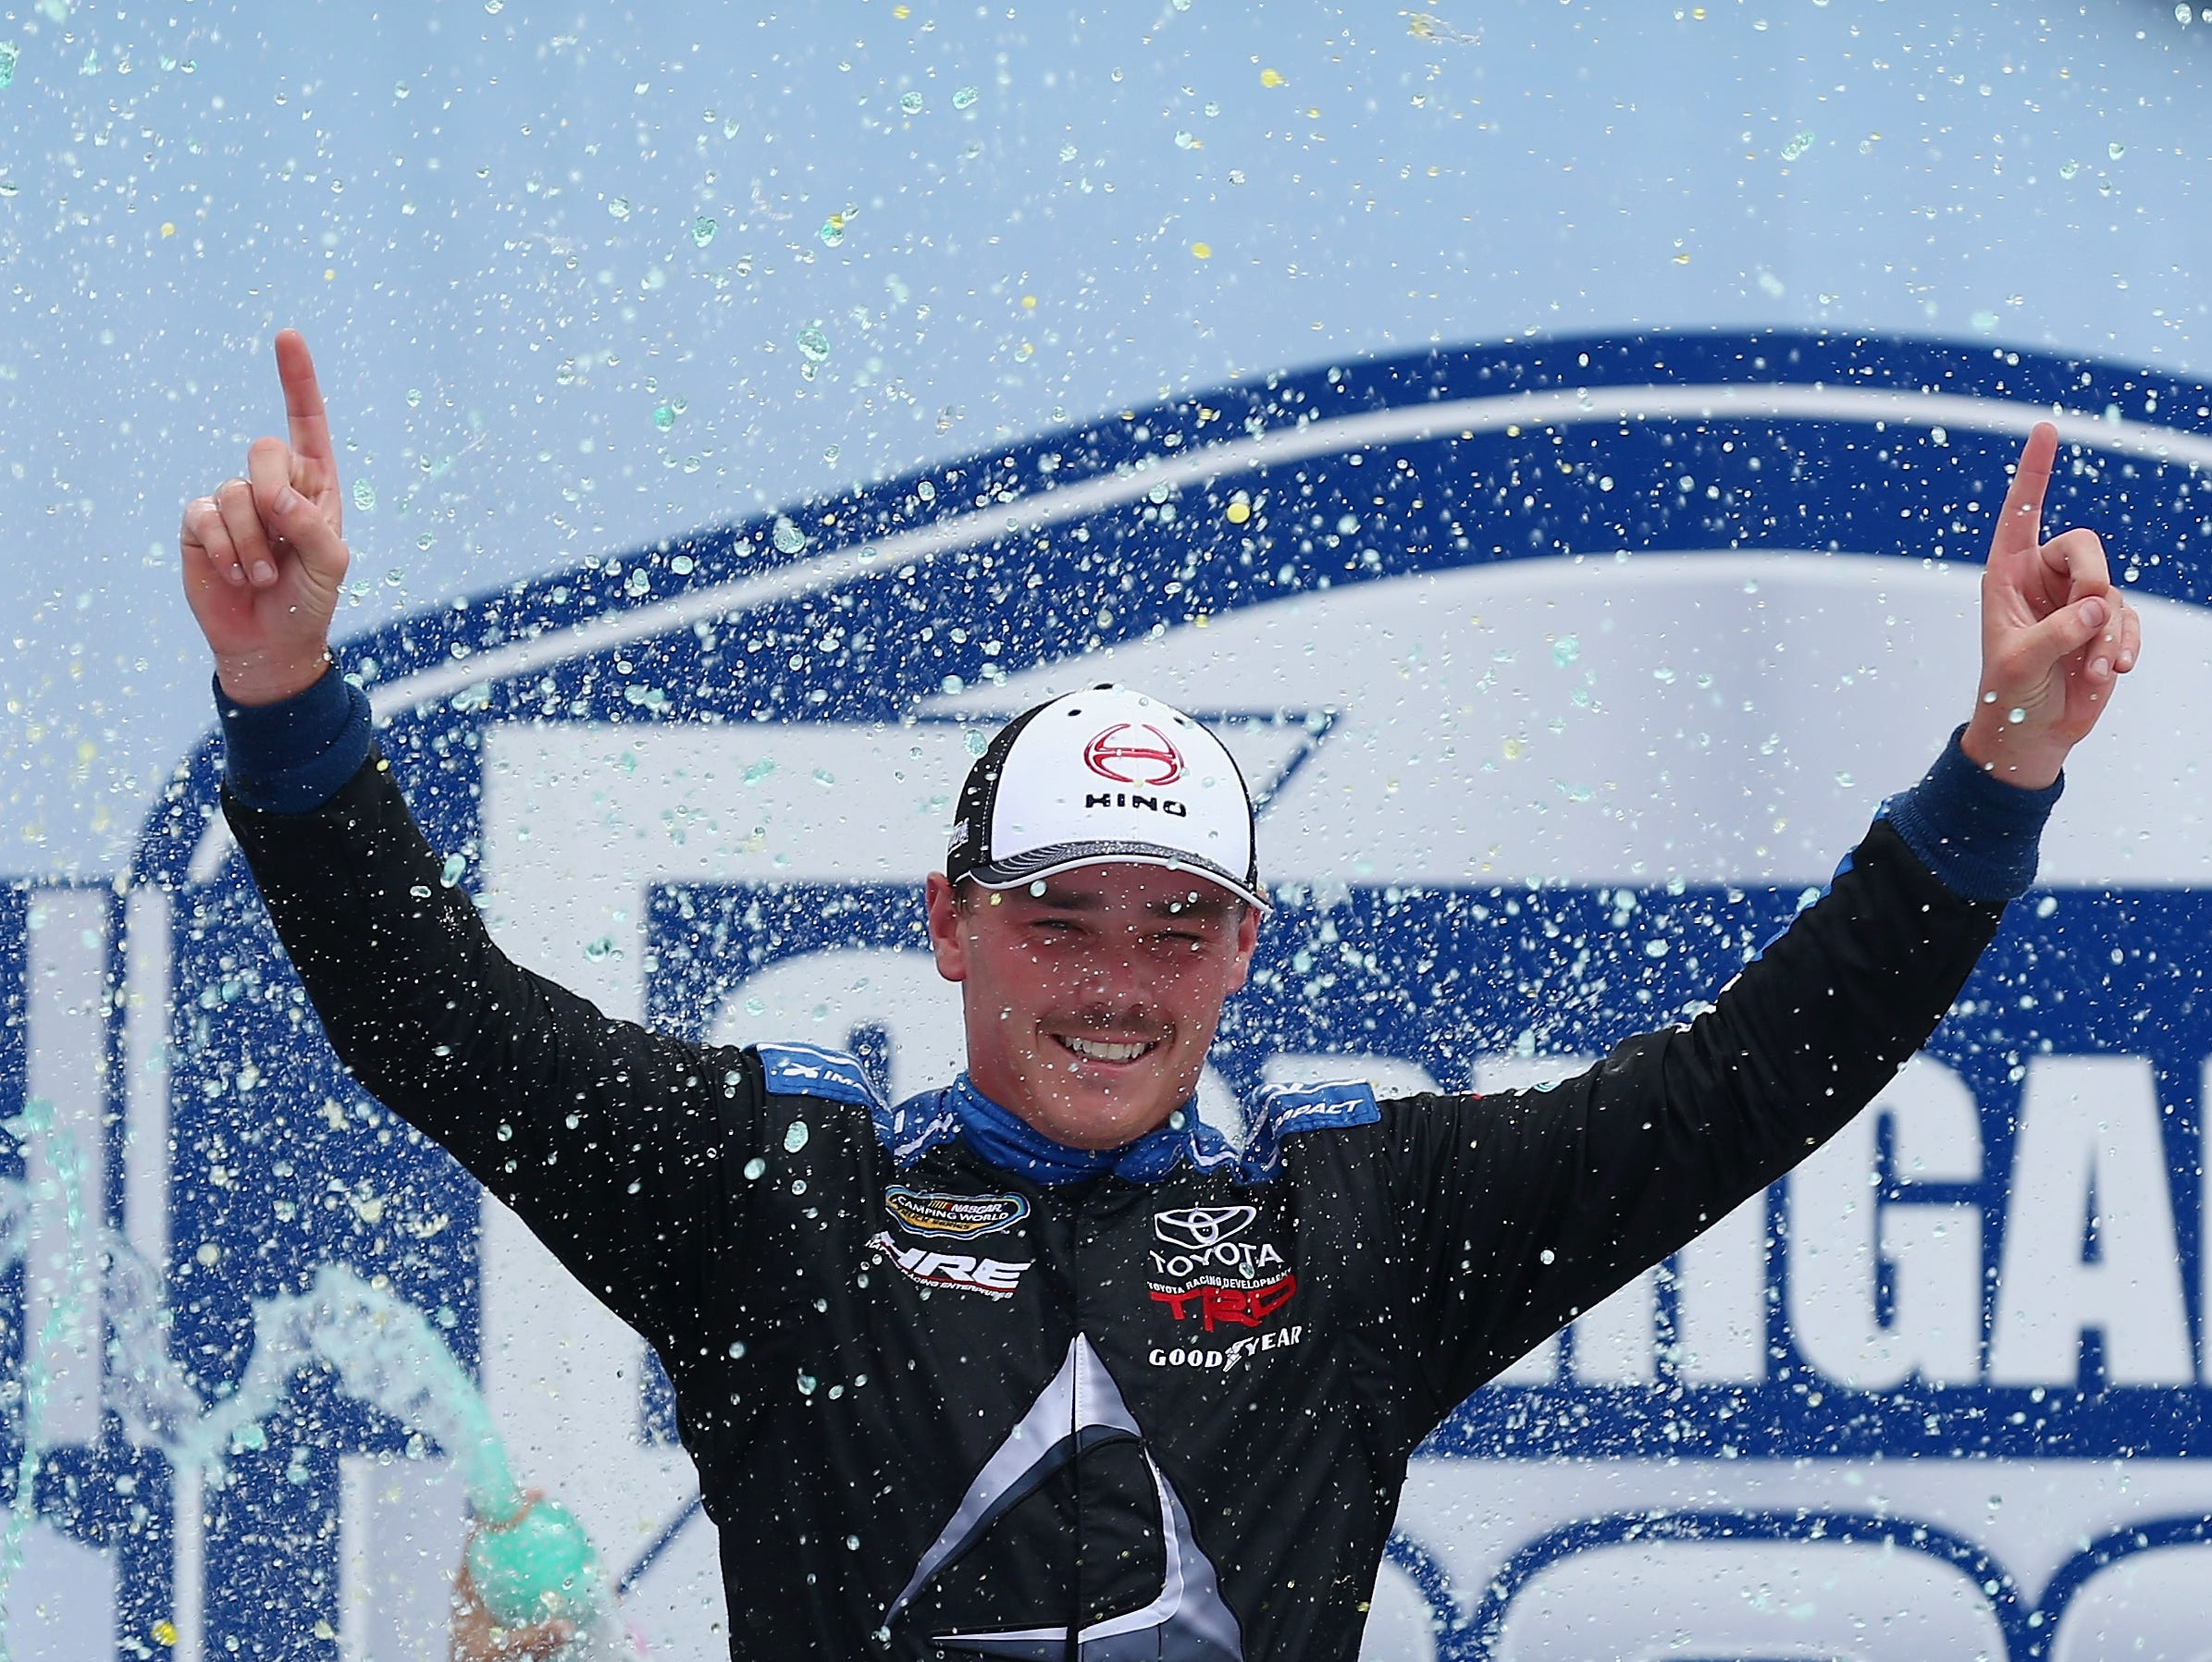 Brett Moffitt, driver of the No. 16 Hino Toyota, celebrates in Victory Lane after winning the NASCAR Camping World Truck Series Corrigan Oil 200 at Michigan International Speedway on August 11, 2018 in Brooklyn.